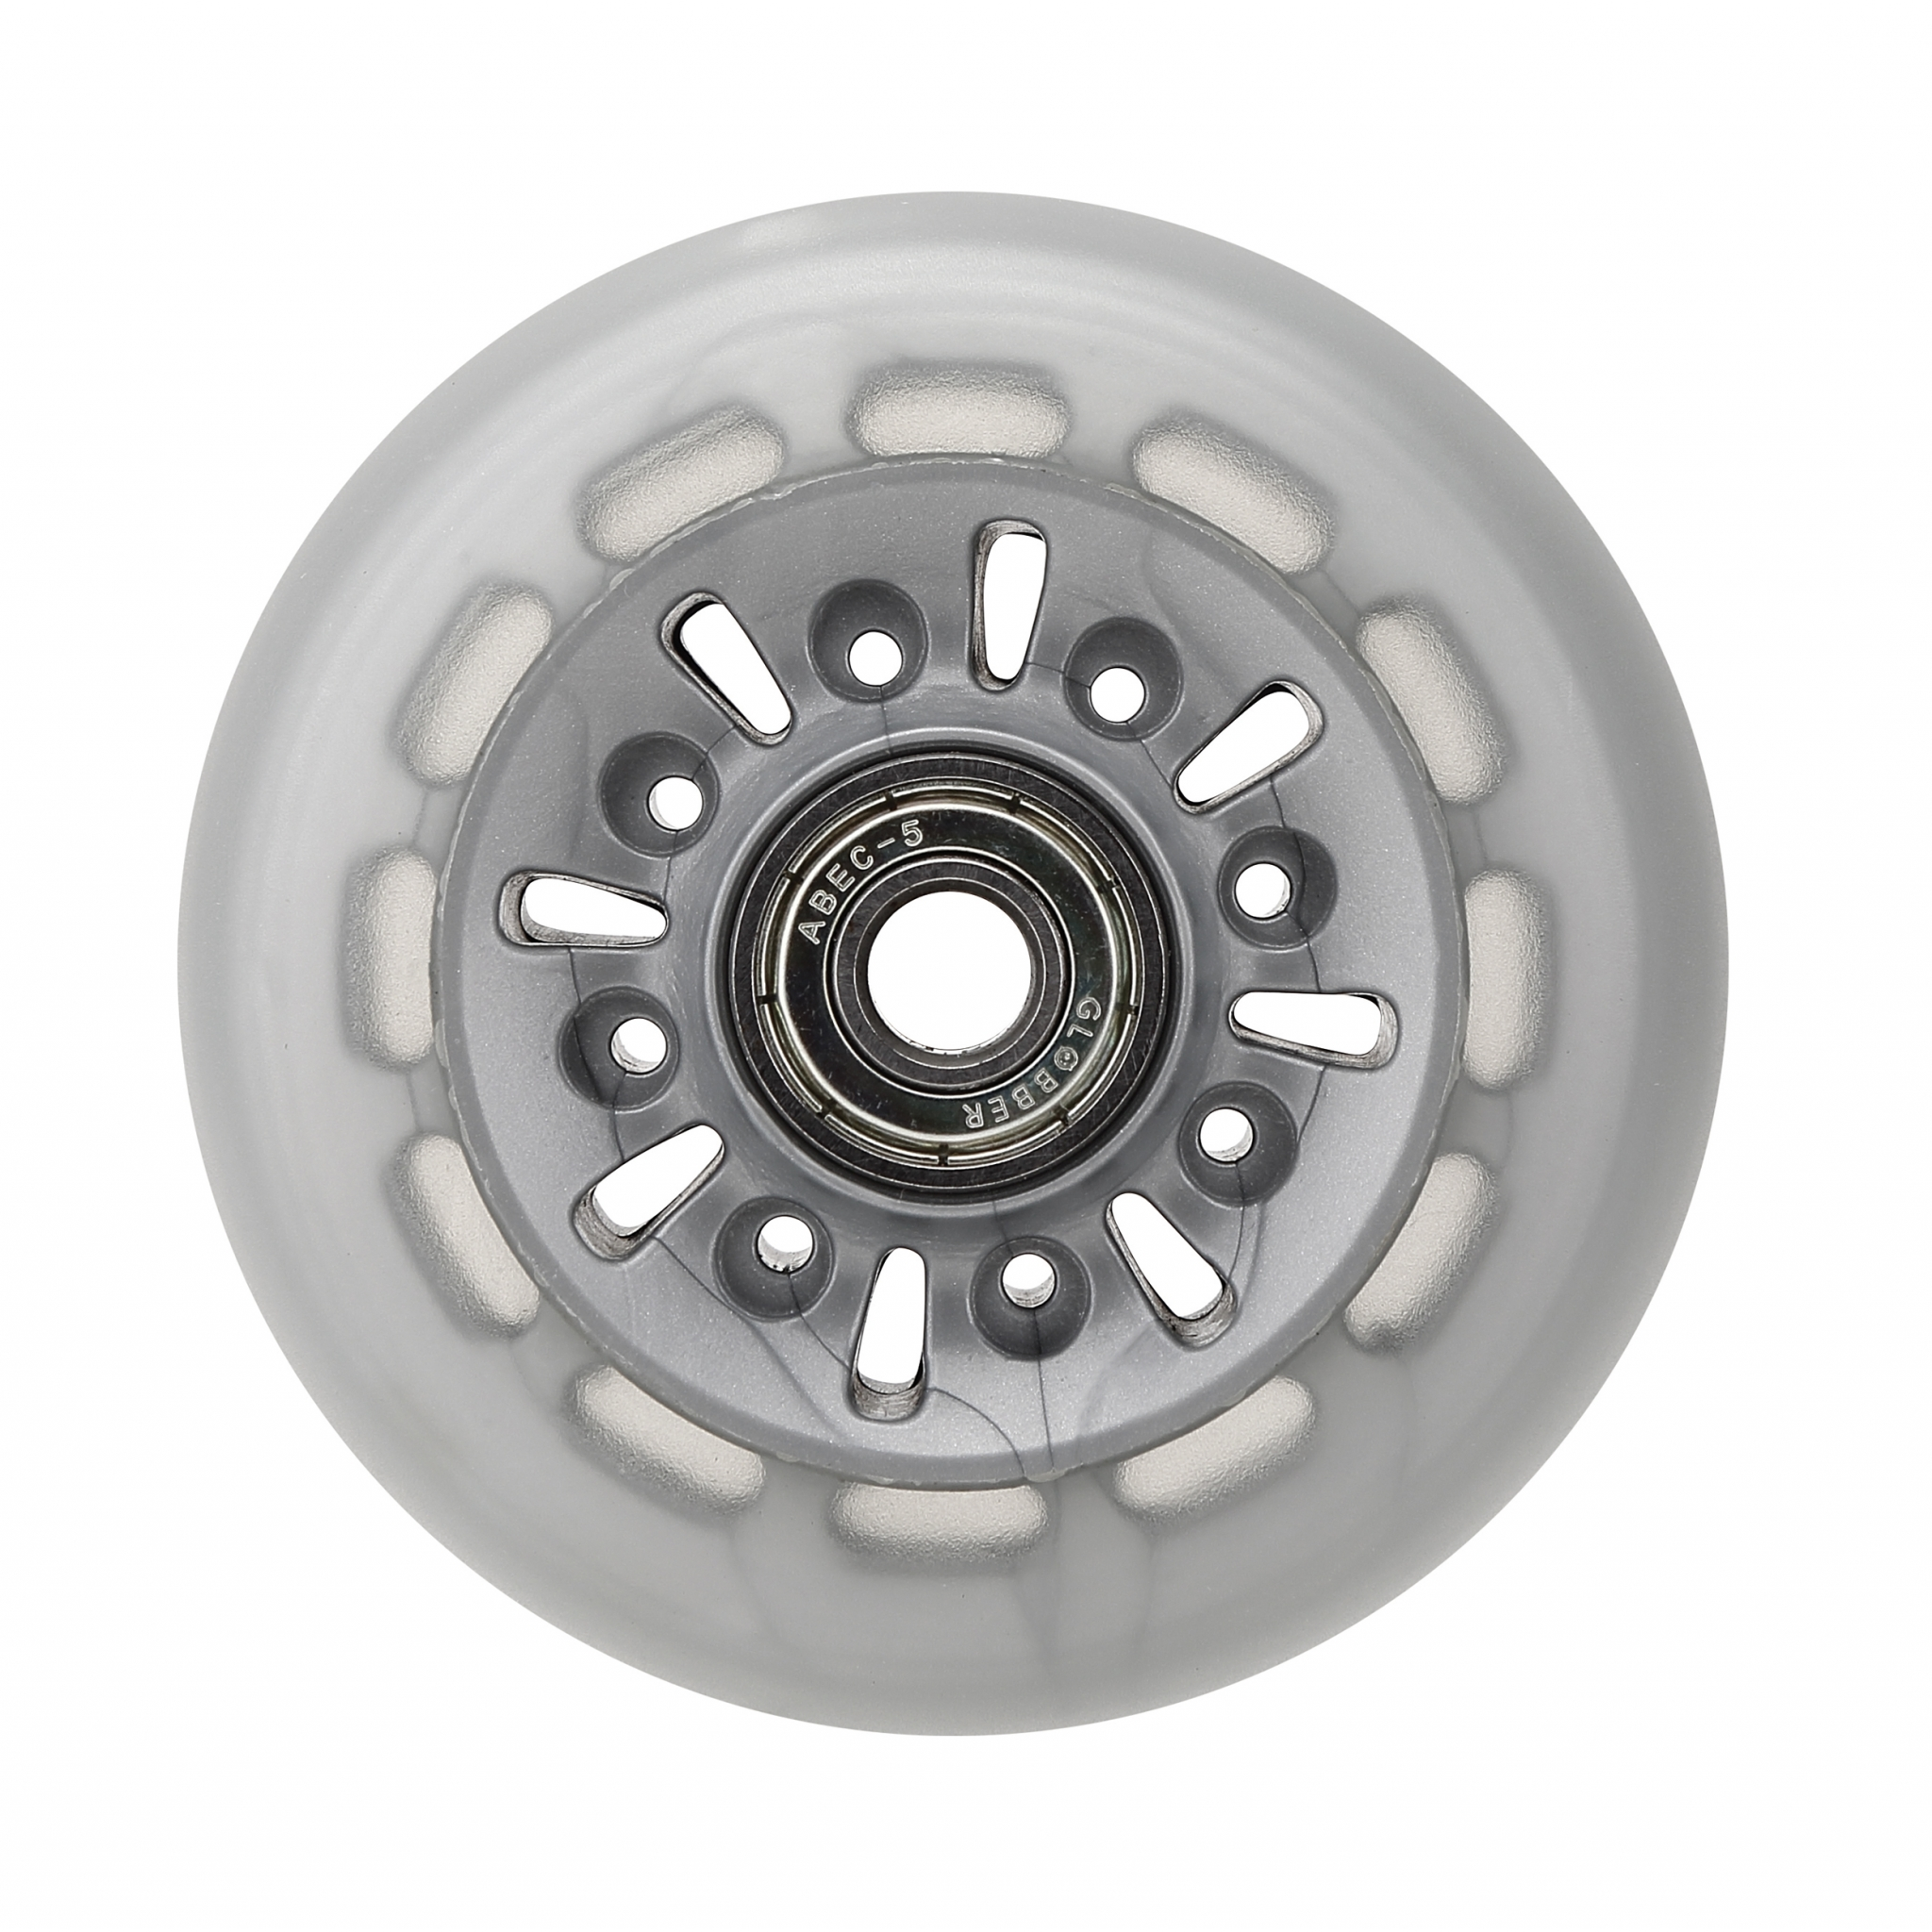 rear wheel for Globber ELITE scooters